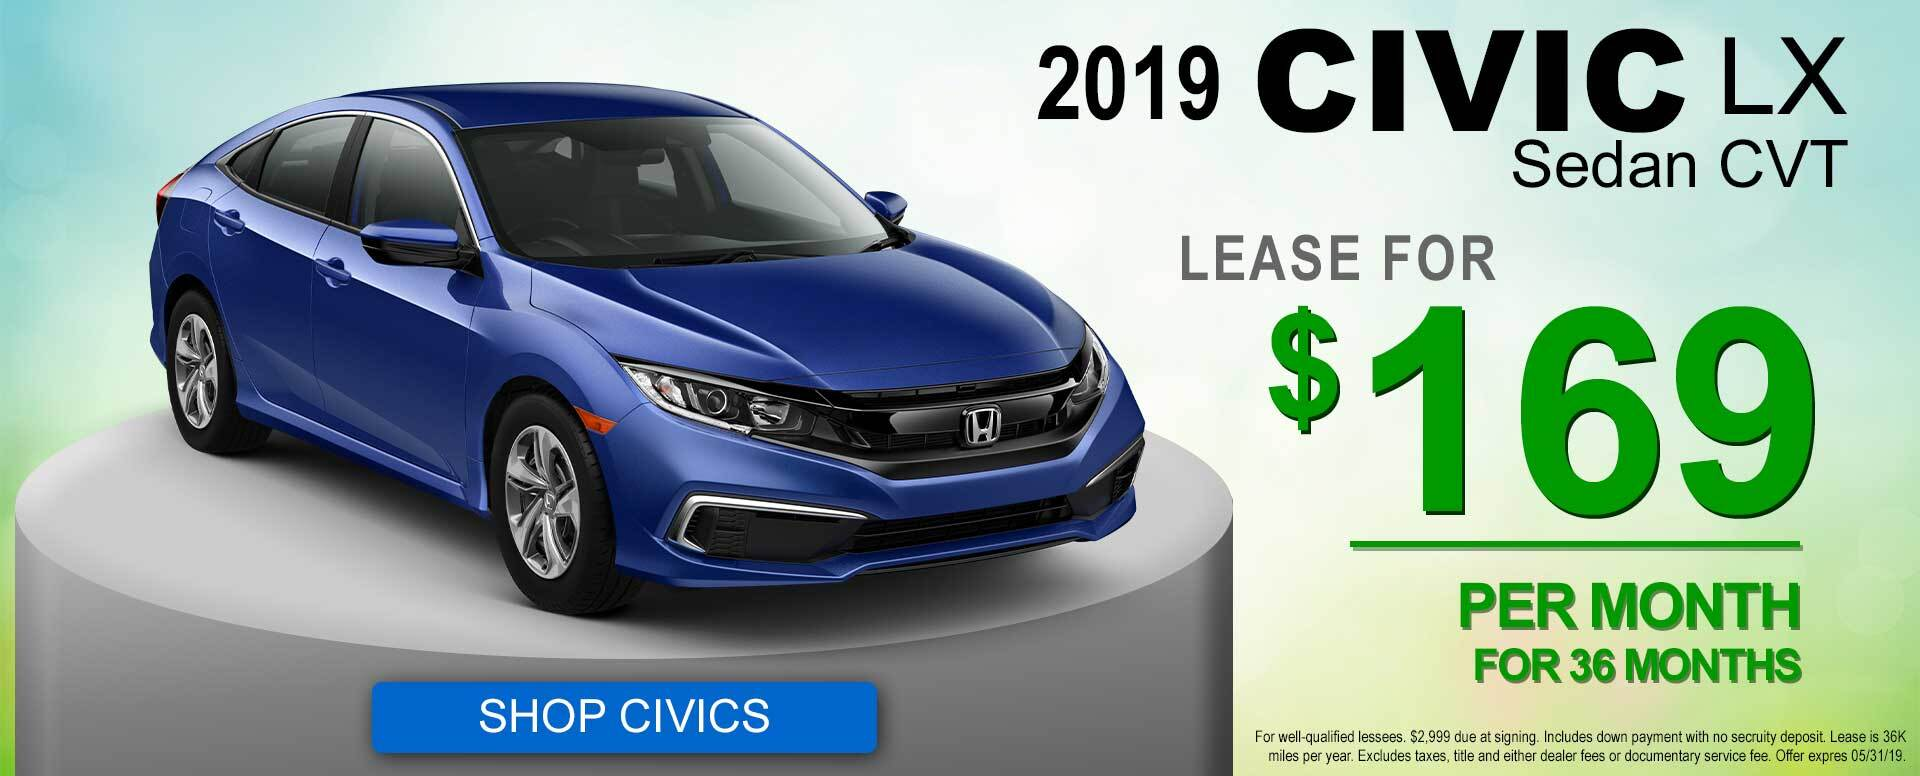 2019 Civic Lease Offer